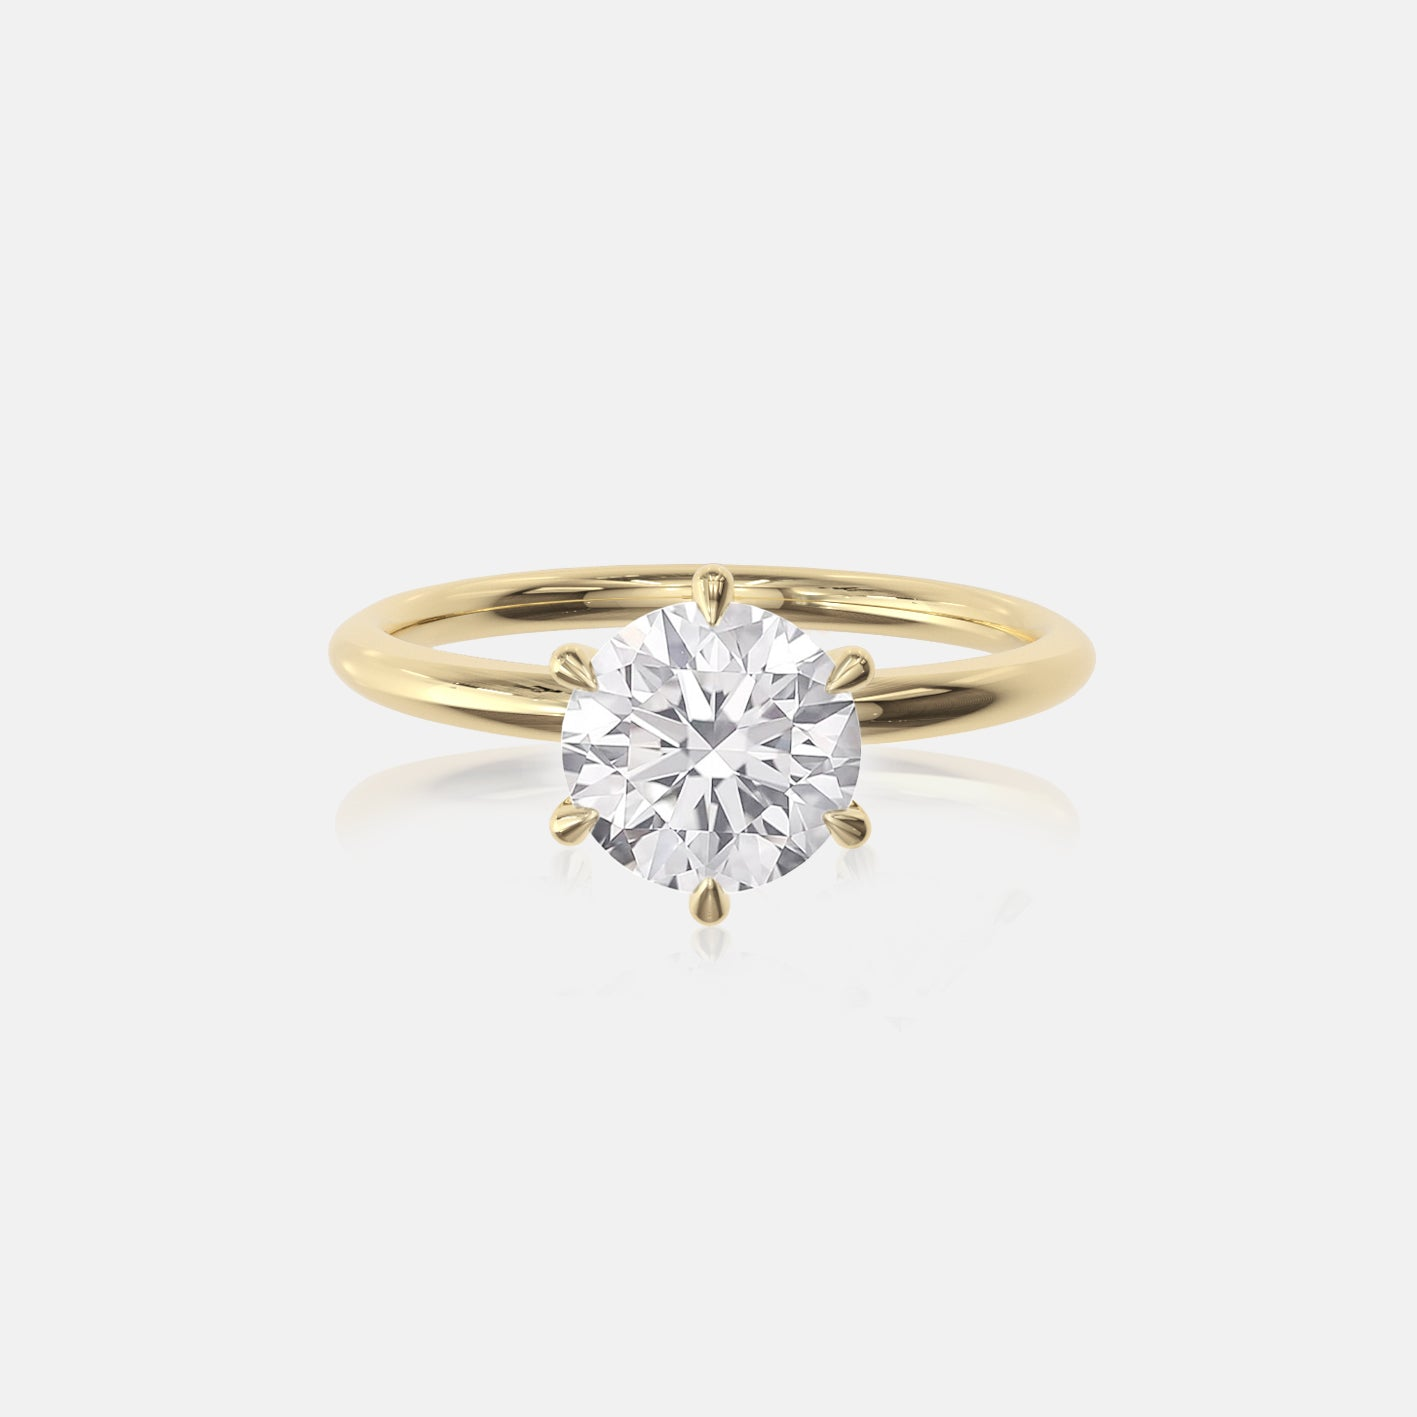 Round Moissanite Ceremonial Solitaire